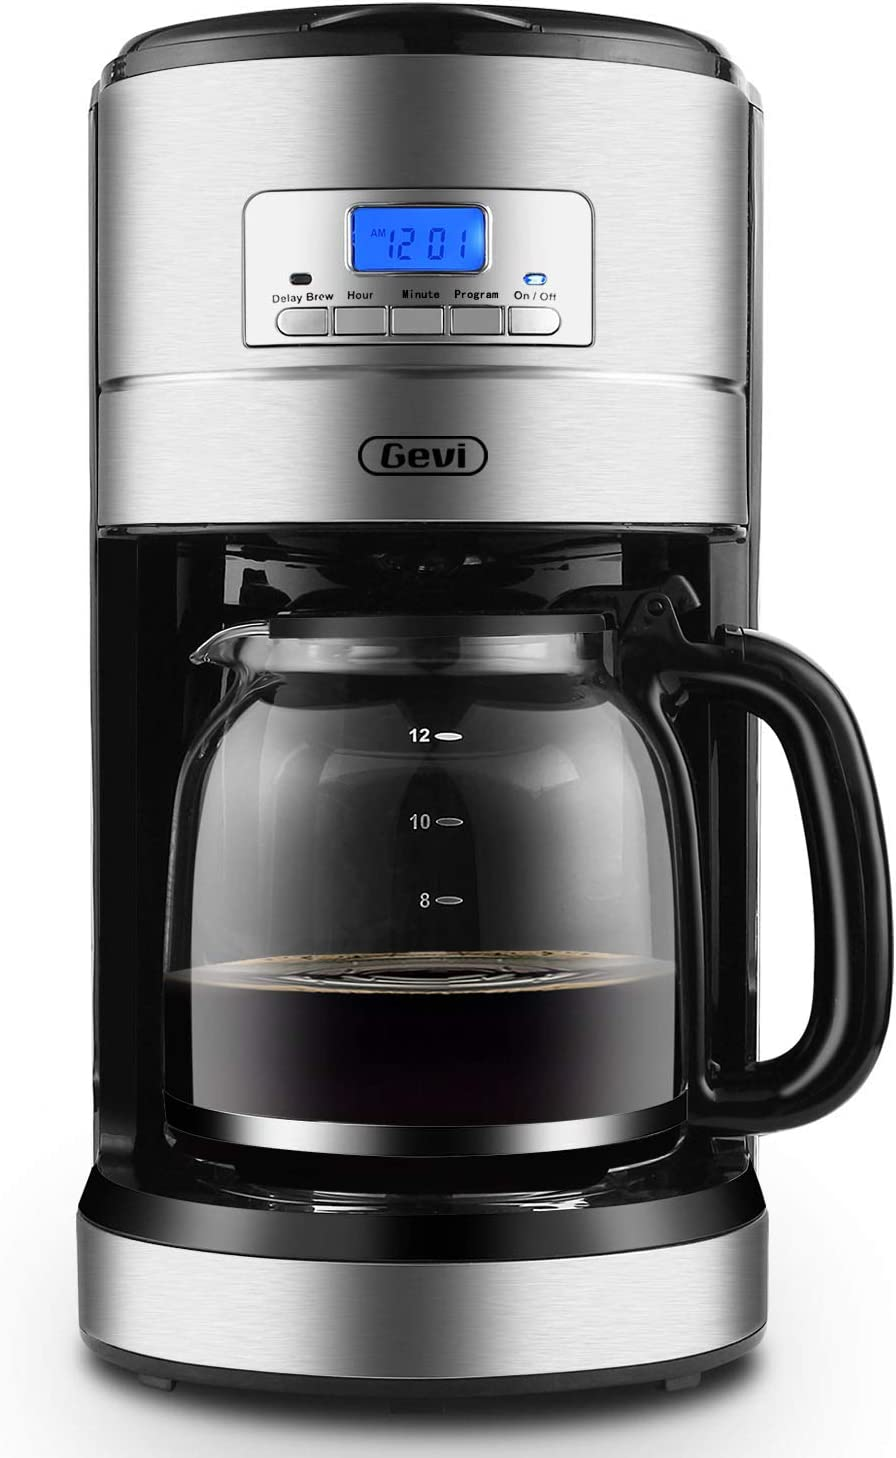 Coffee Makers 12 Cup, Gevi Programmable Coffee Maker with Auto Shut-off, Coffee Pot with Filter and Hot Plate,Silver